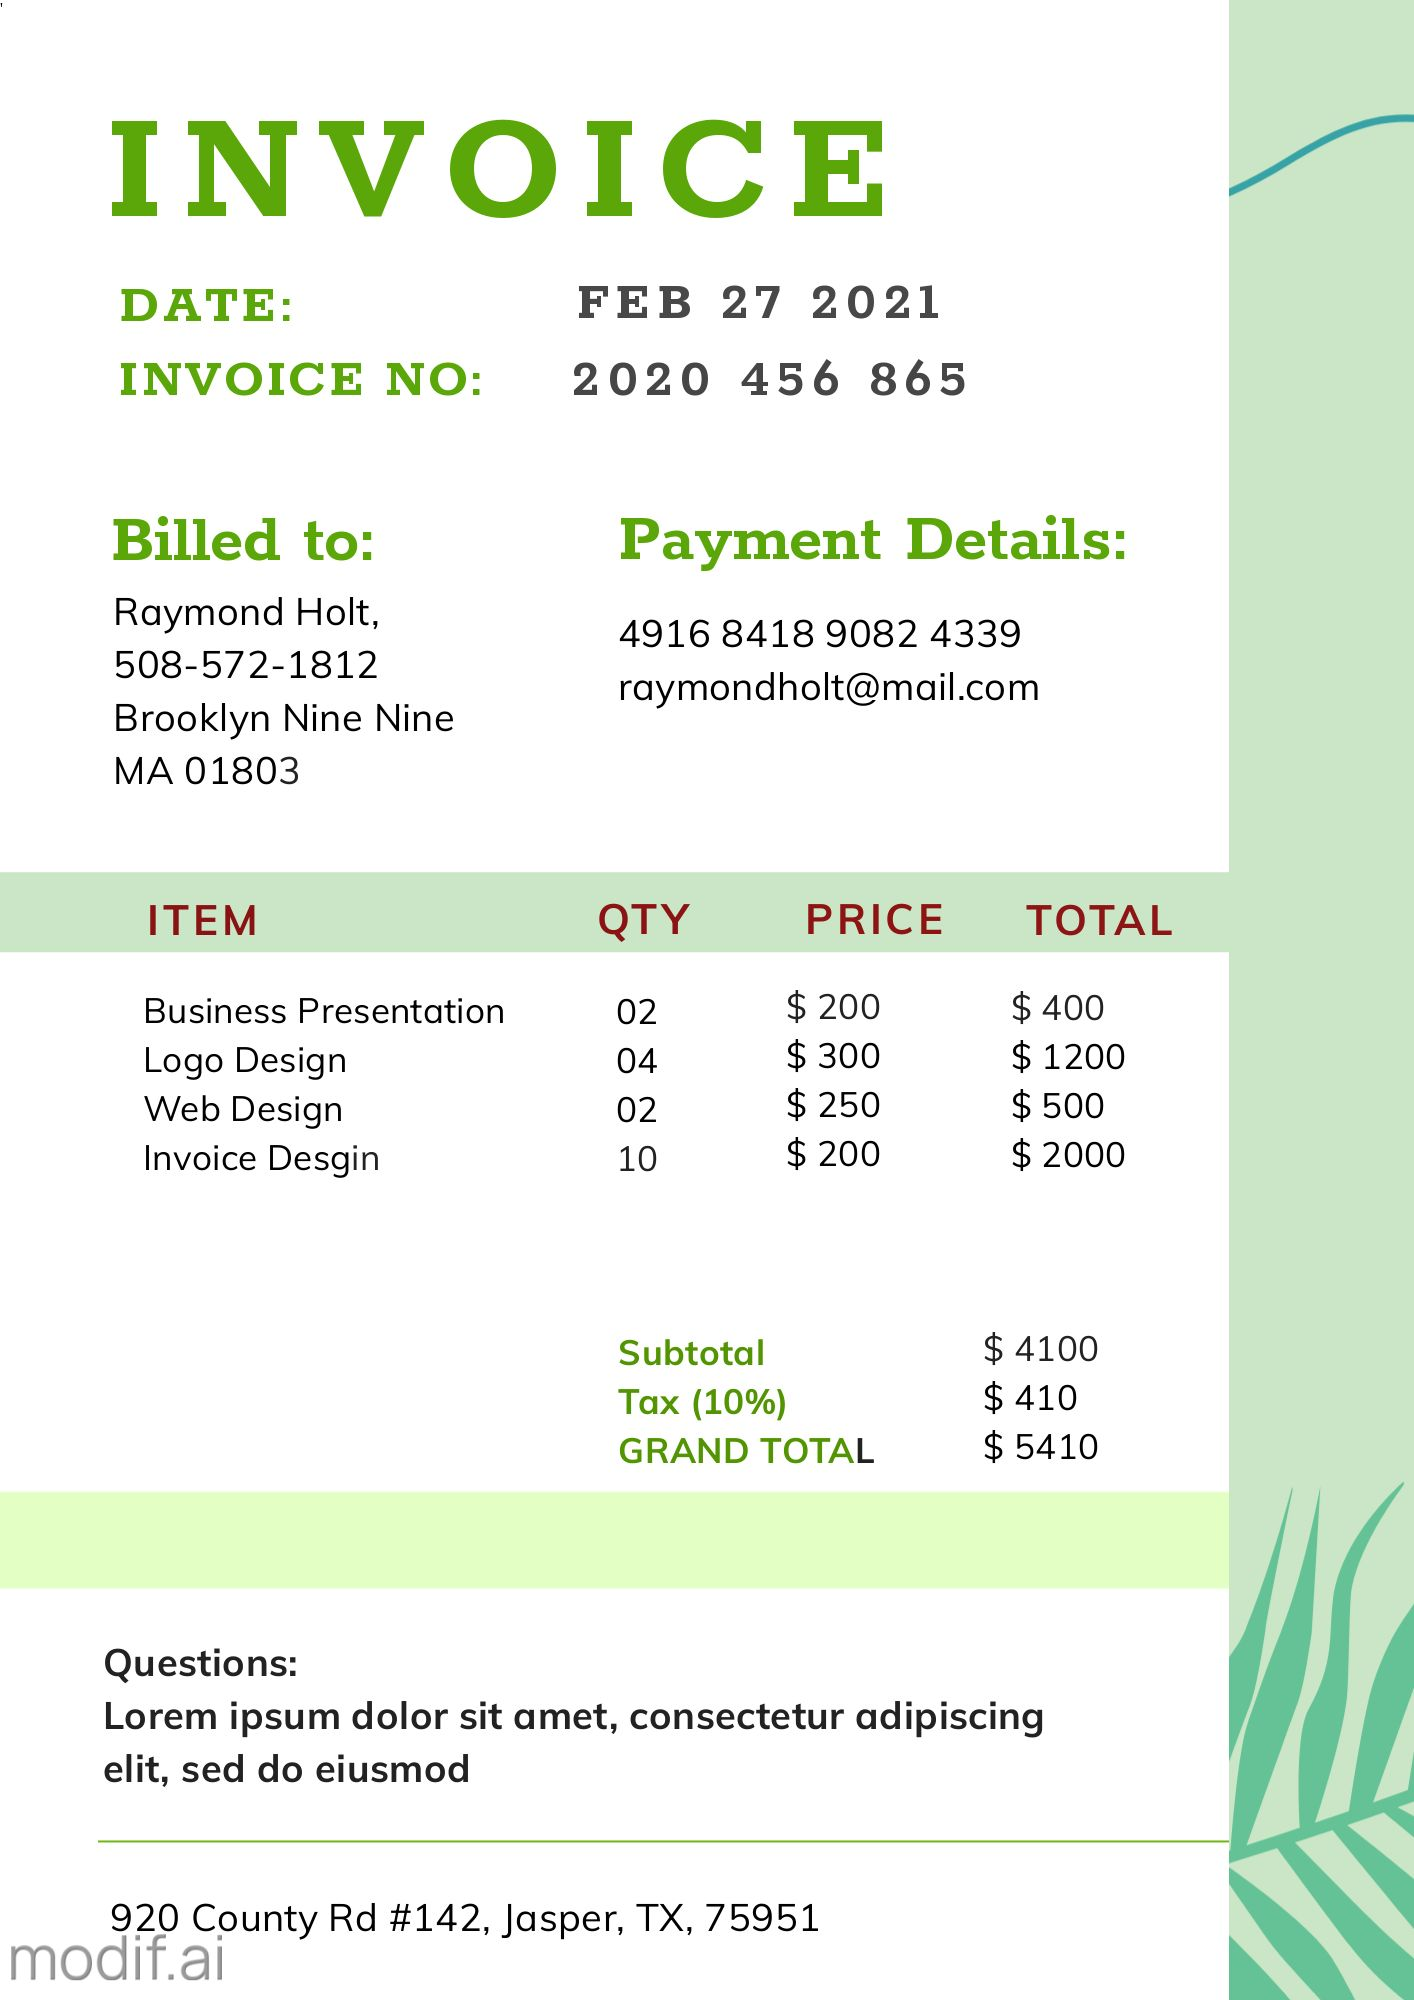 Invoice Template for Business Service